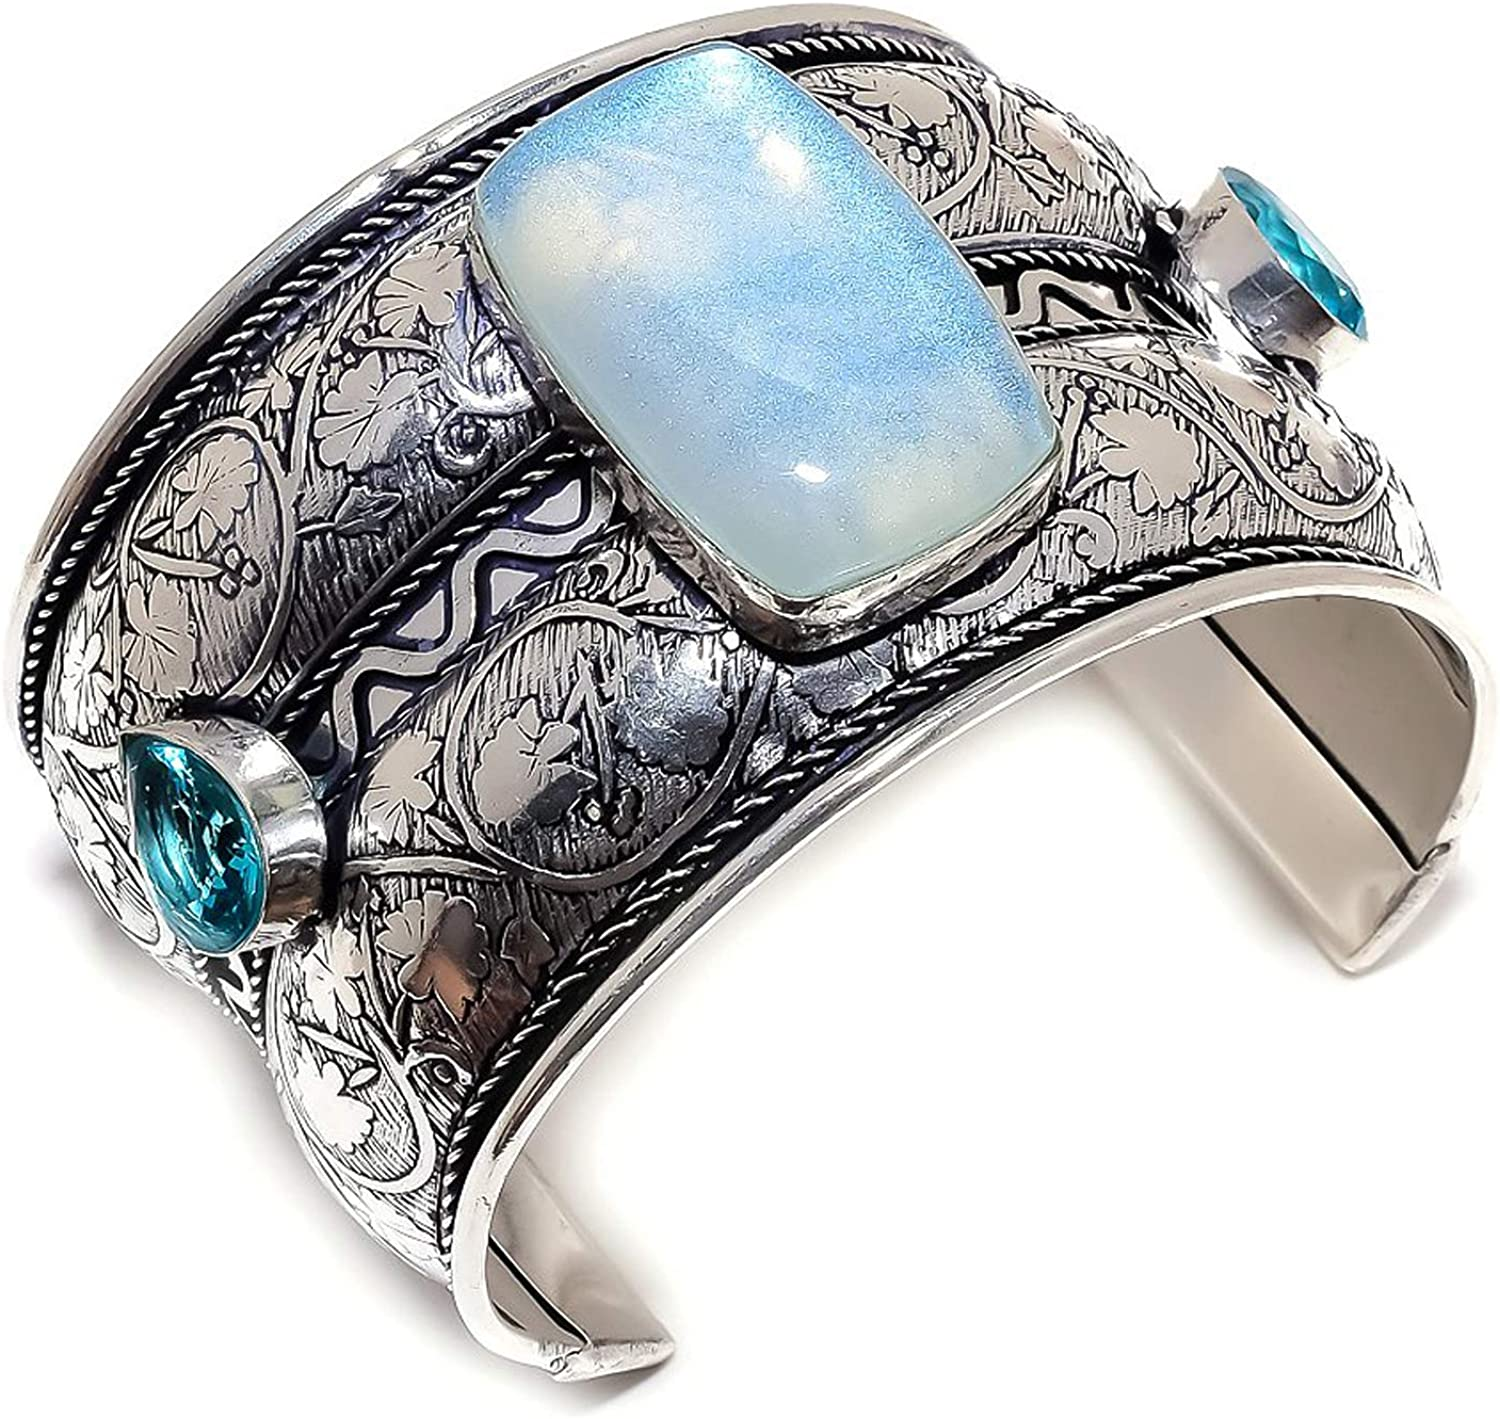 Milky Opal Apatite Gemstone 925 Silver A Great interest Bracelet Sterling 2021 autumn and winter new Cuff